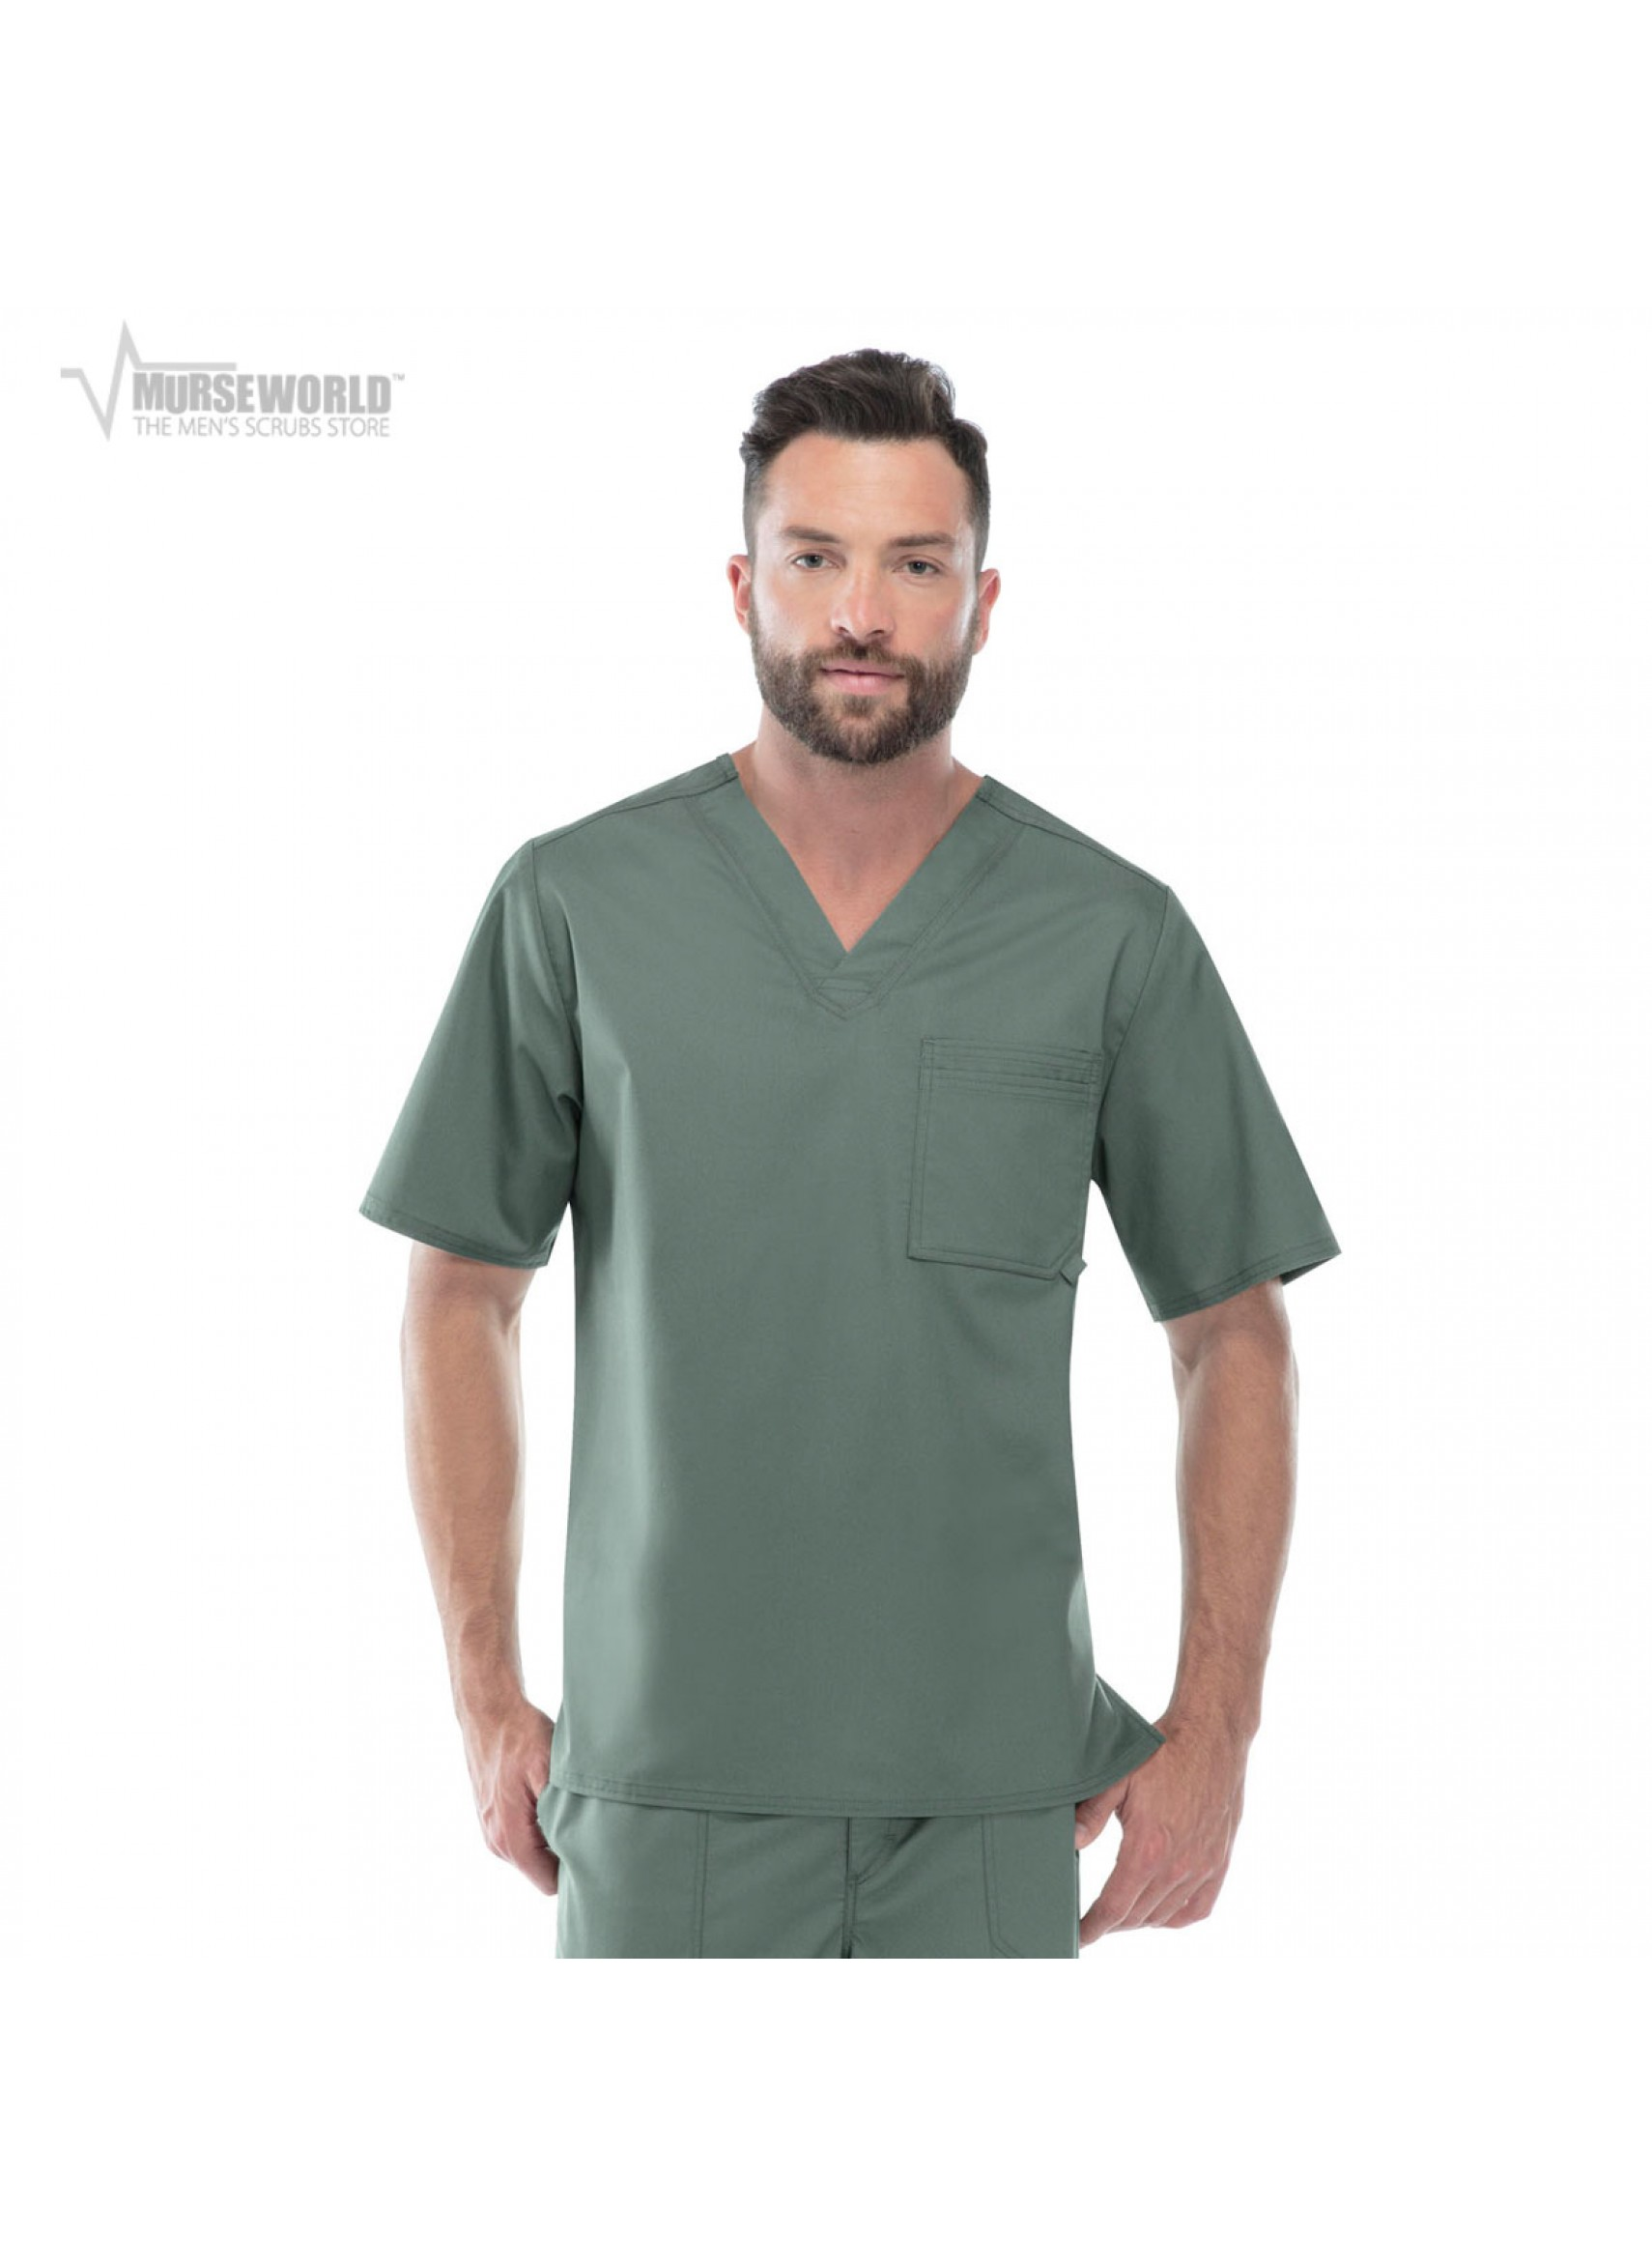 cca3f012a58 20% off all Dickies Scrubs! Use code DICKIES20 at checkout! Cherokee Luxe  Men's V-Neck Scrub Top ...